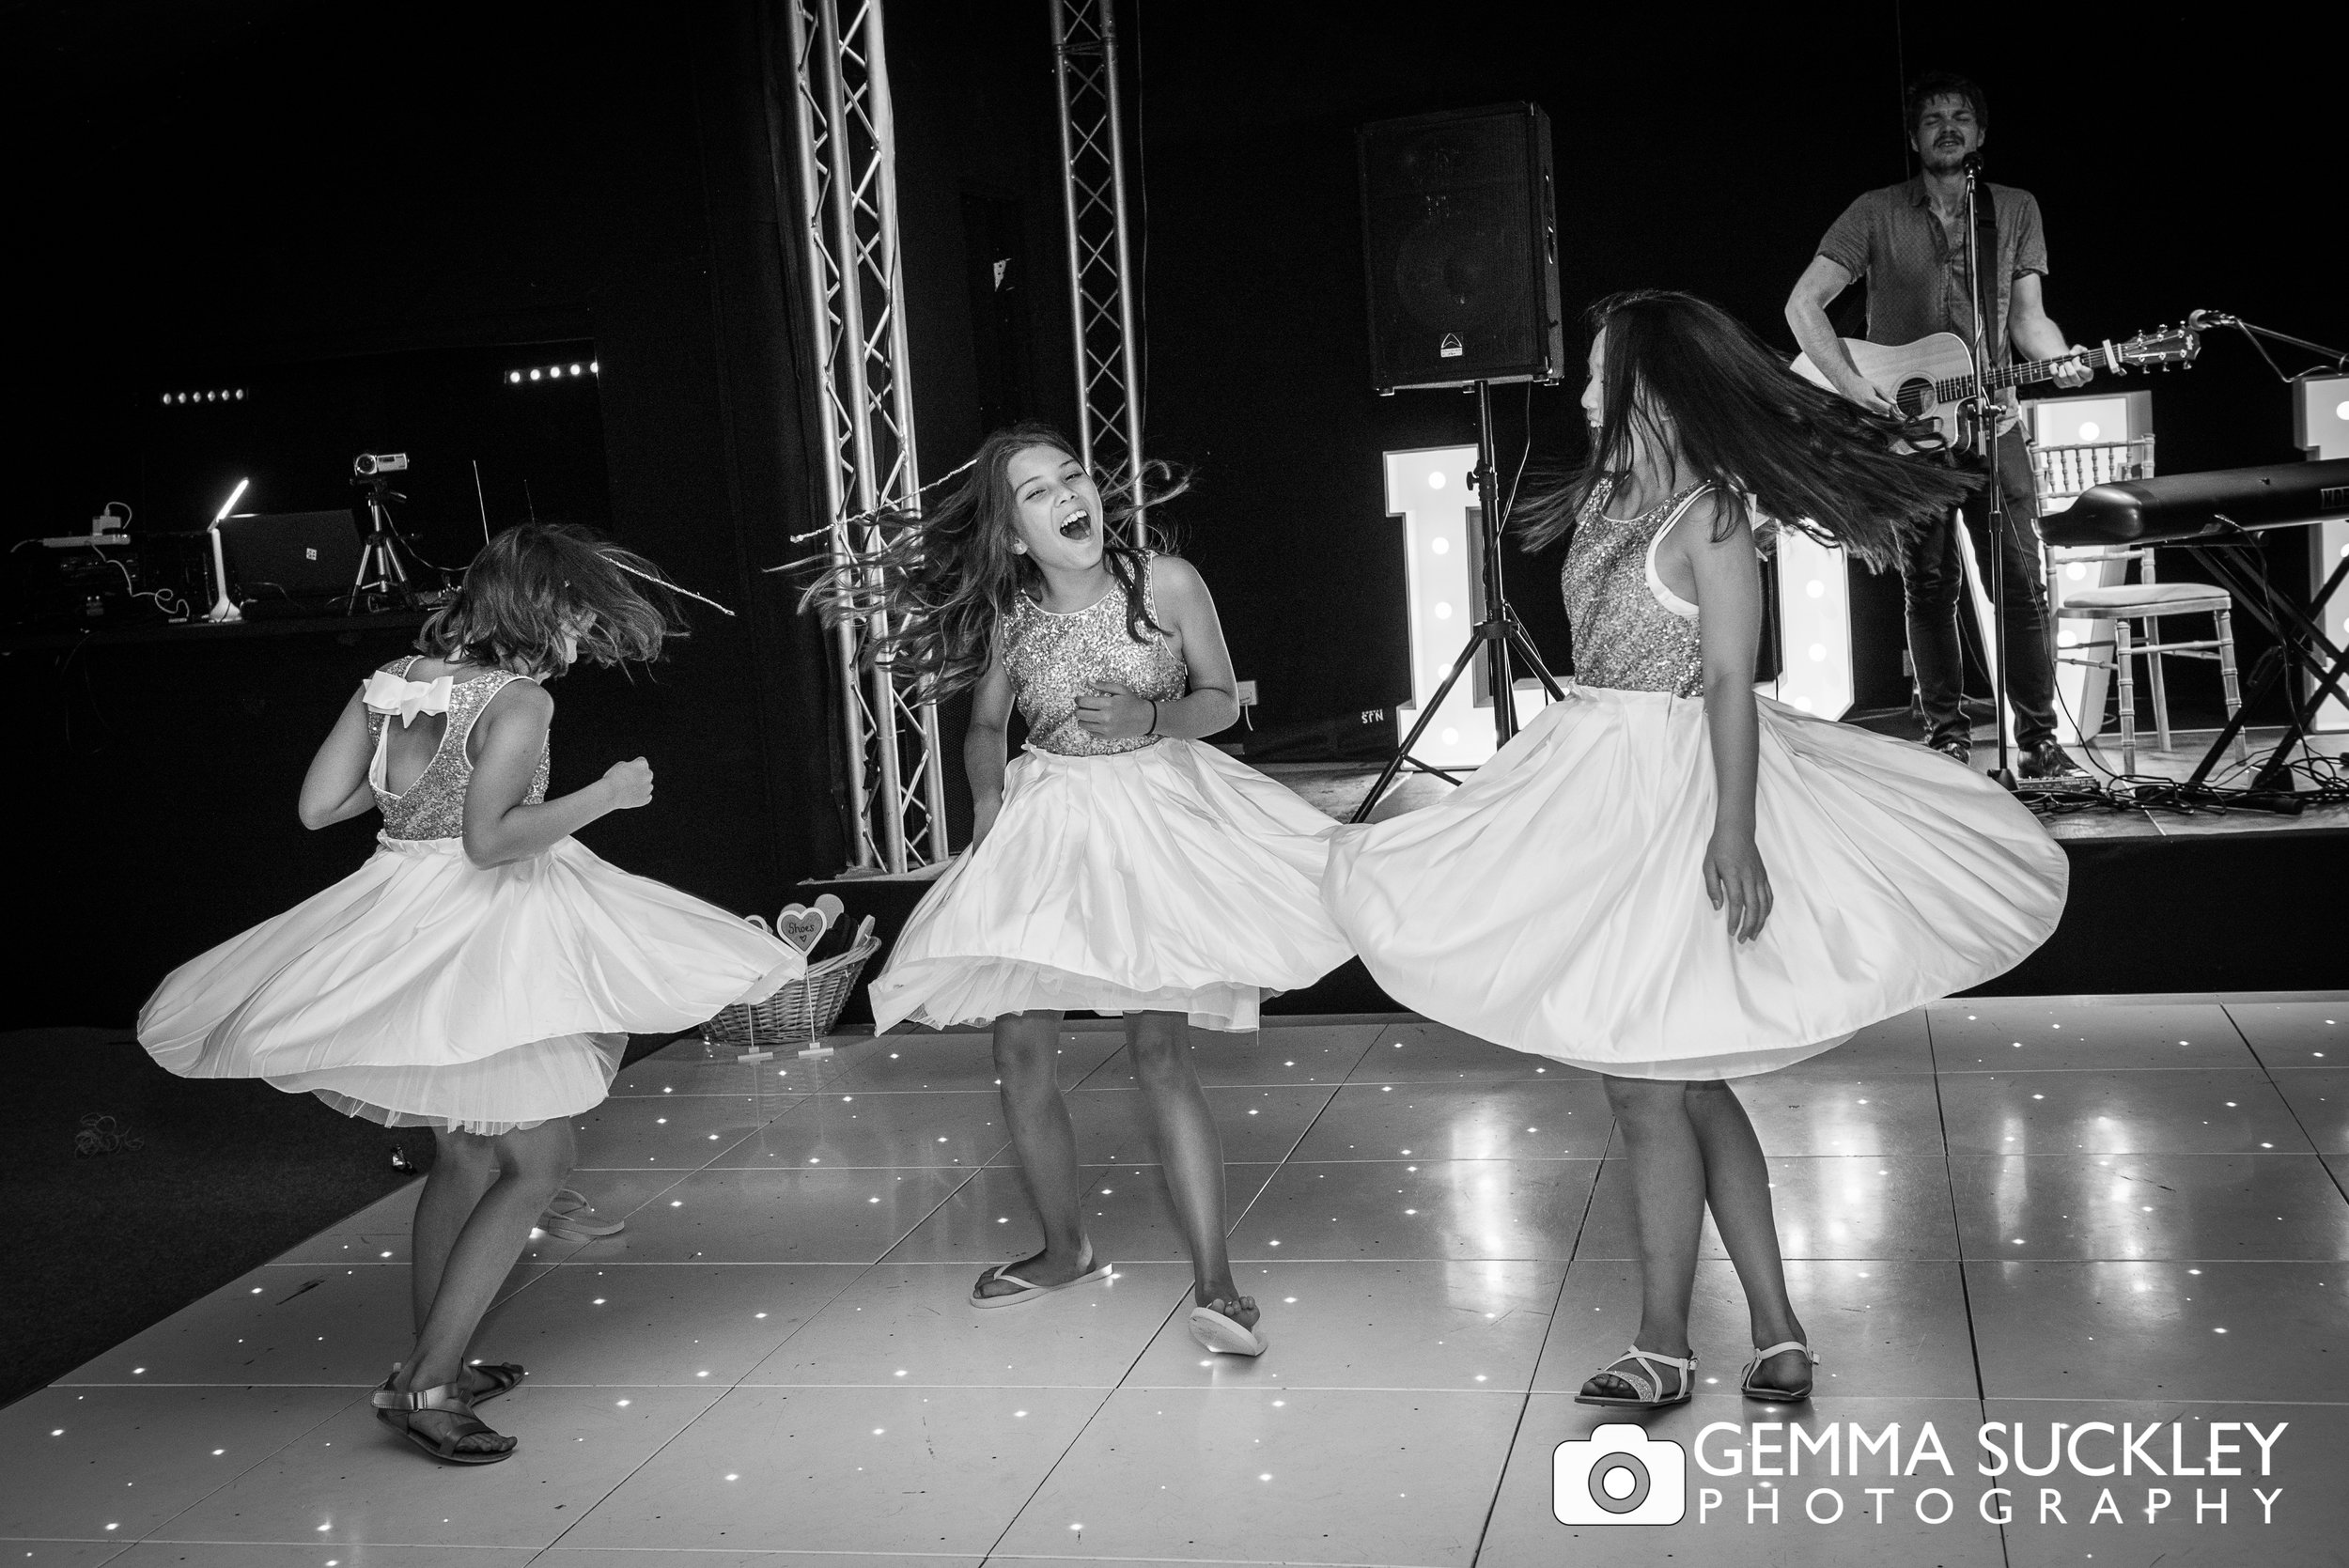 flower girls spinning so their dress blows out